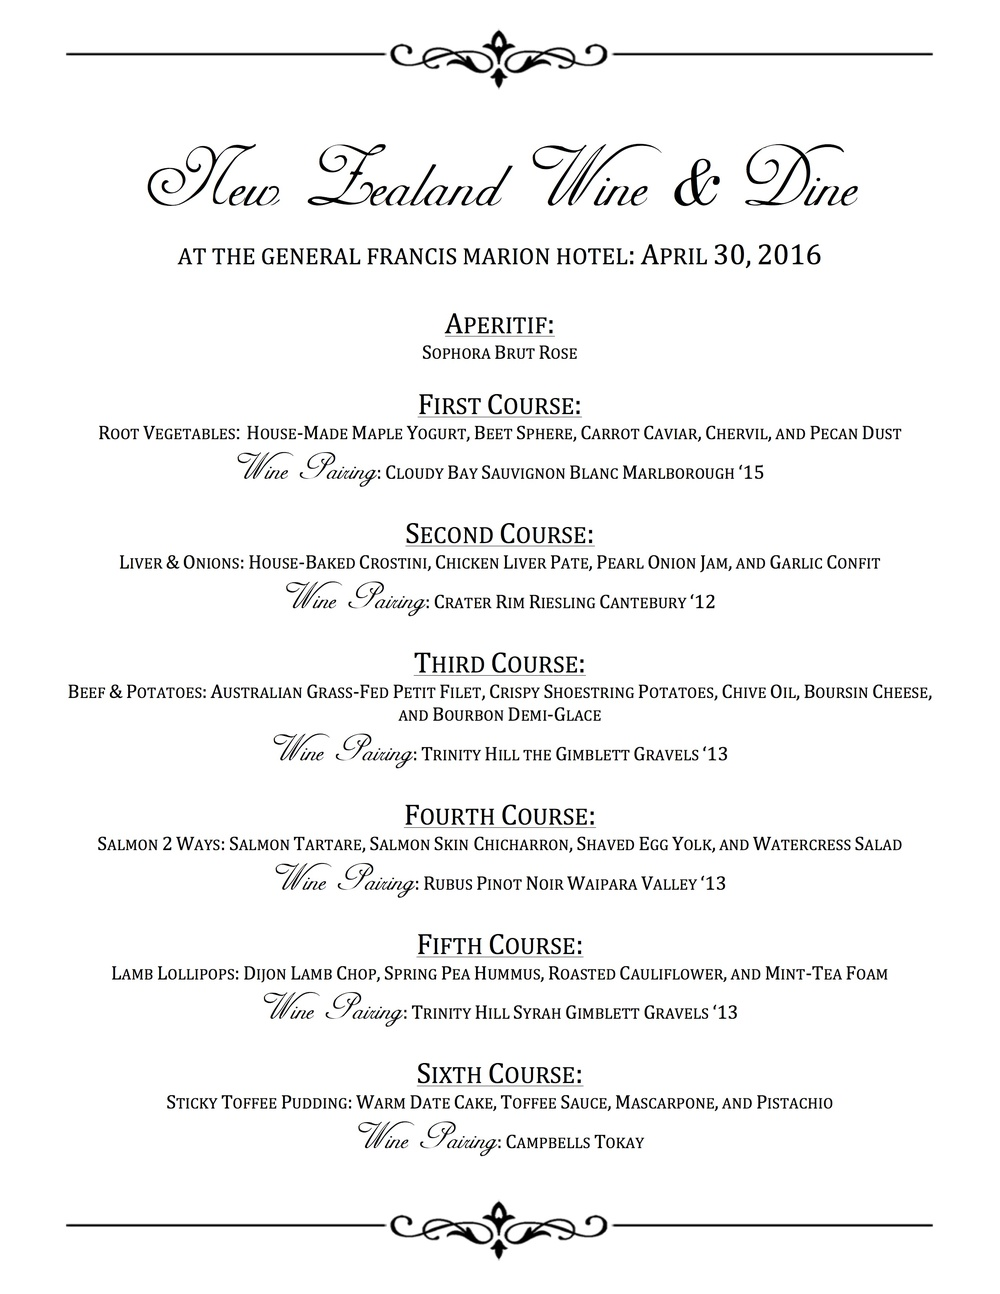 New Zealand Wine & Dine Menu at The General Francis Marion Hotel